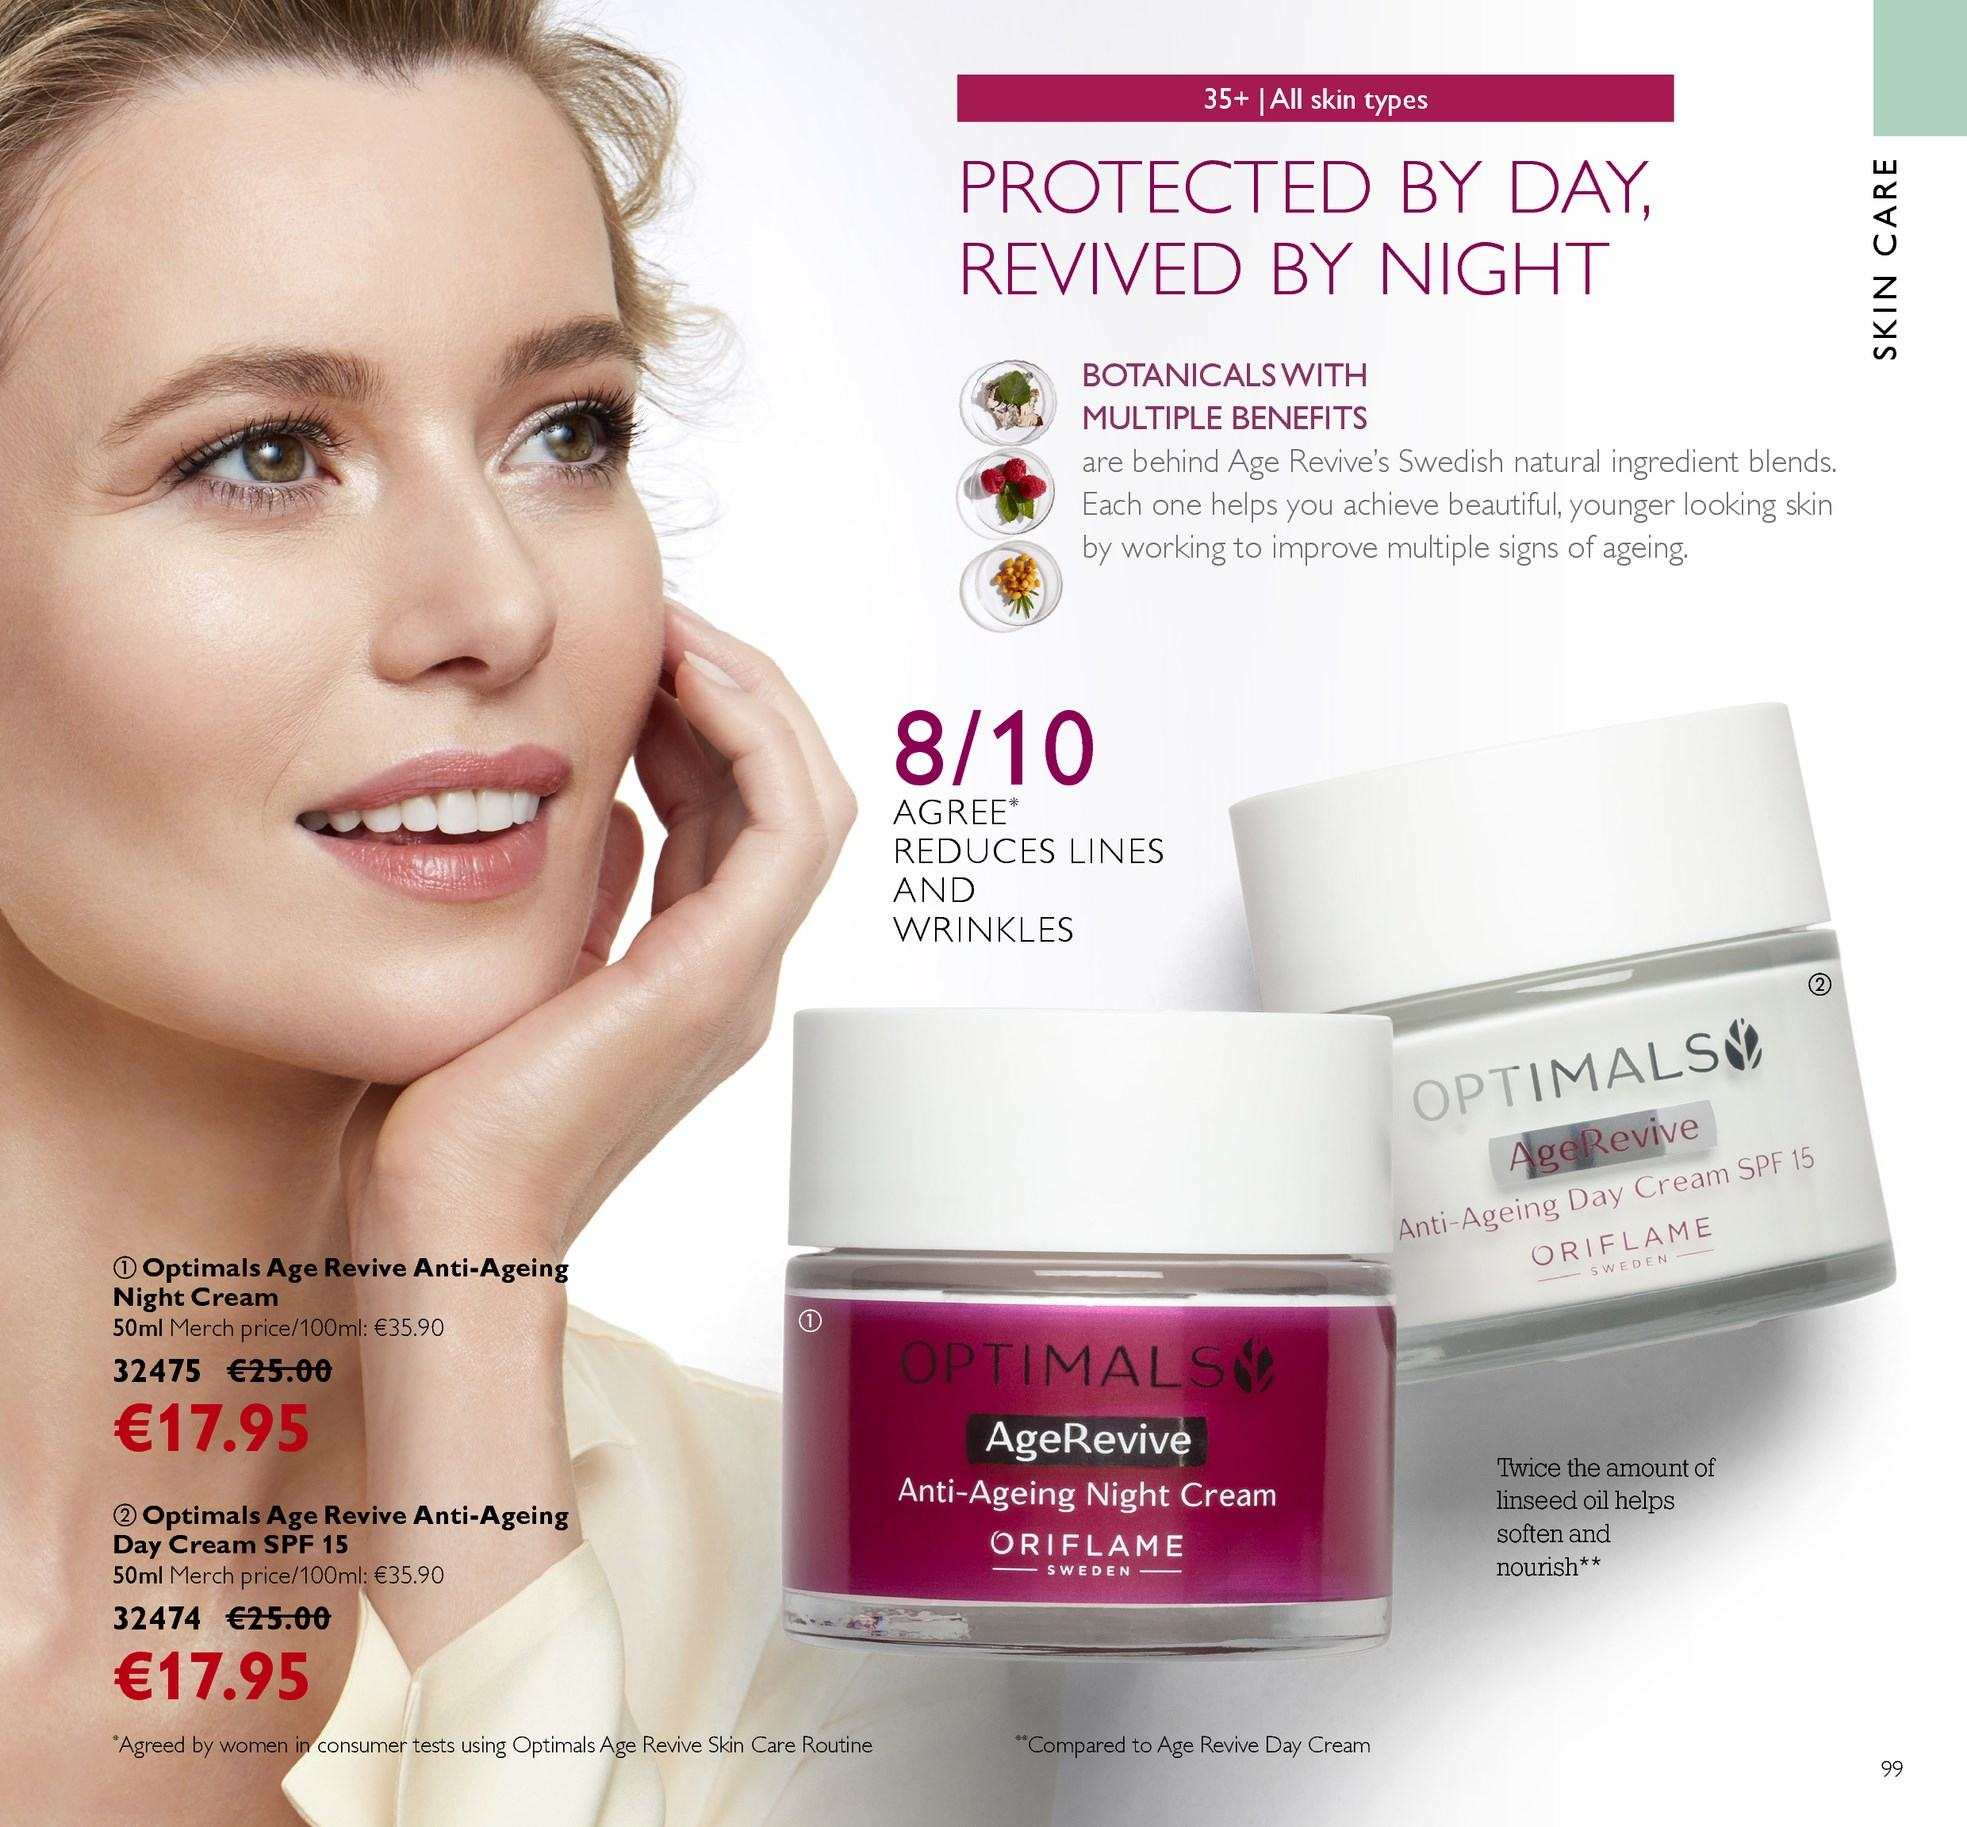 Oriflame offer  - 13.4.2018 - 3.5.2018 - Sales products - day cream, night cream, Optimals, oil. Page 99.